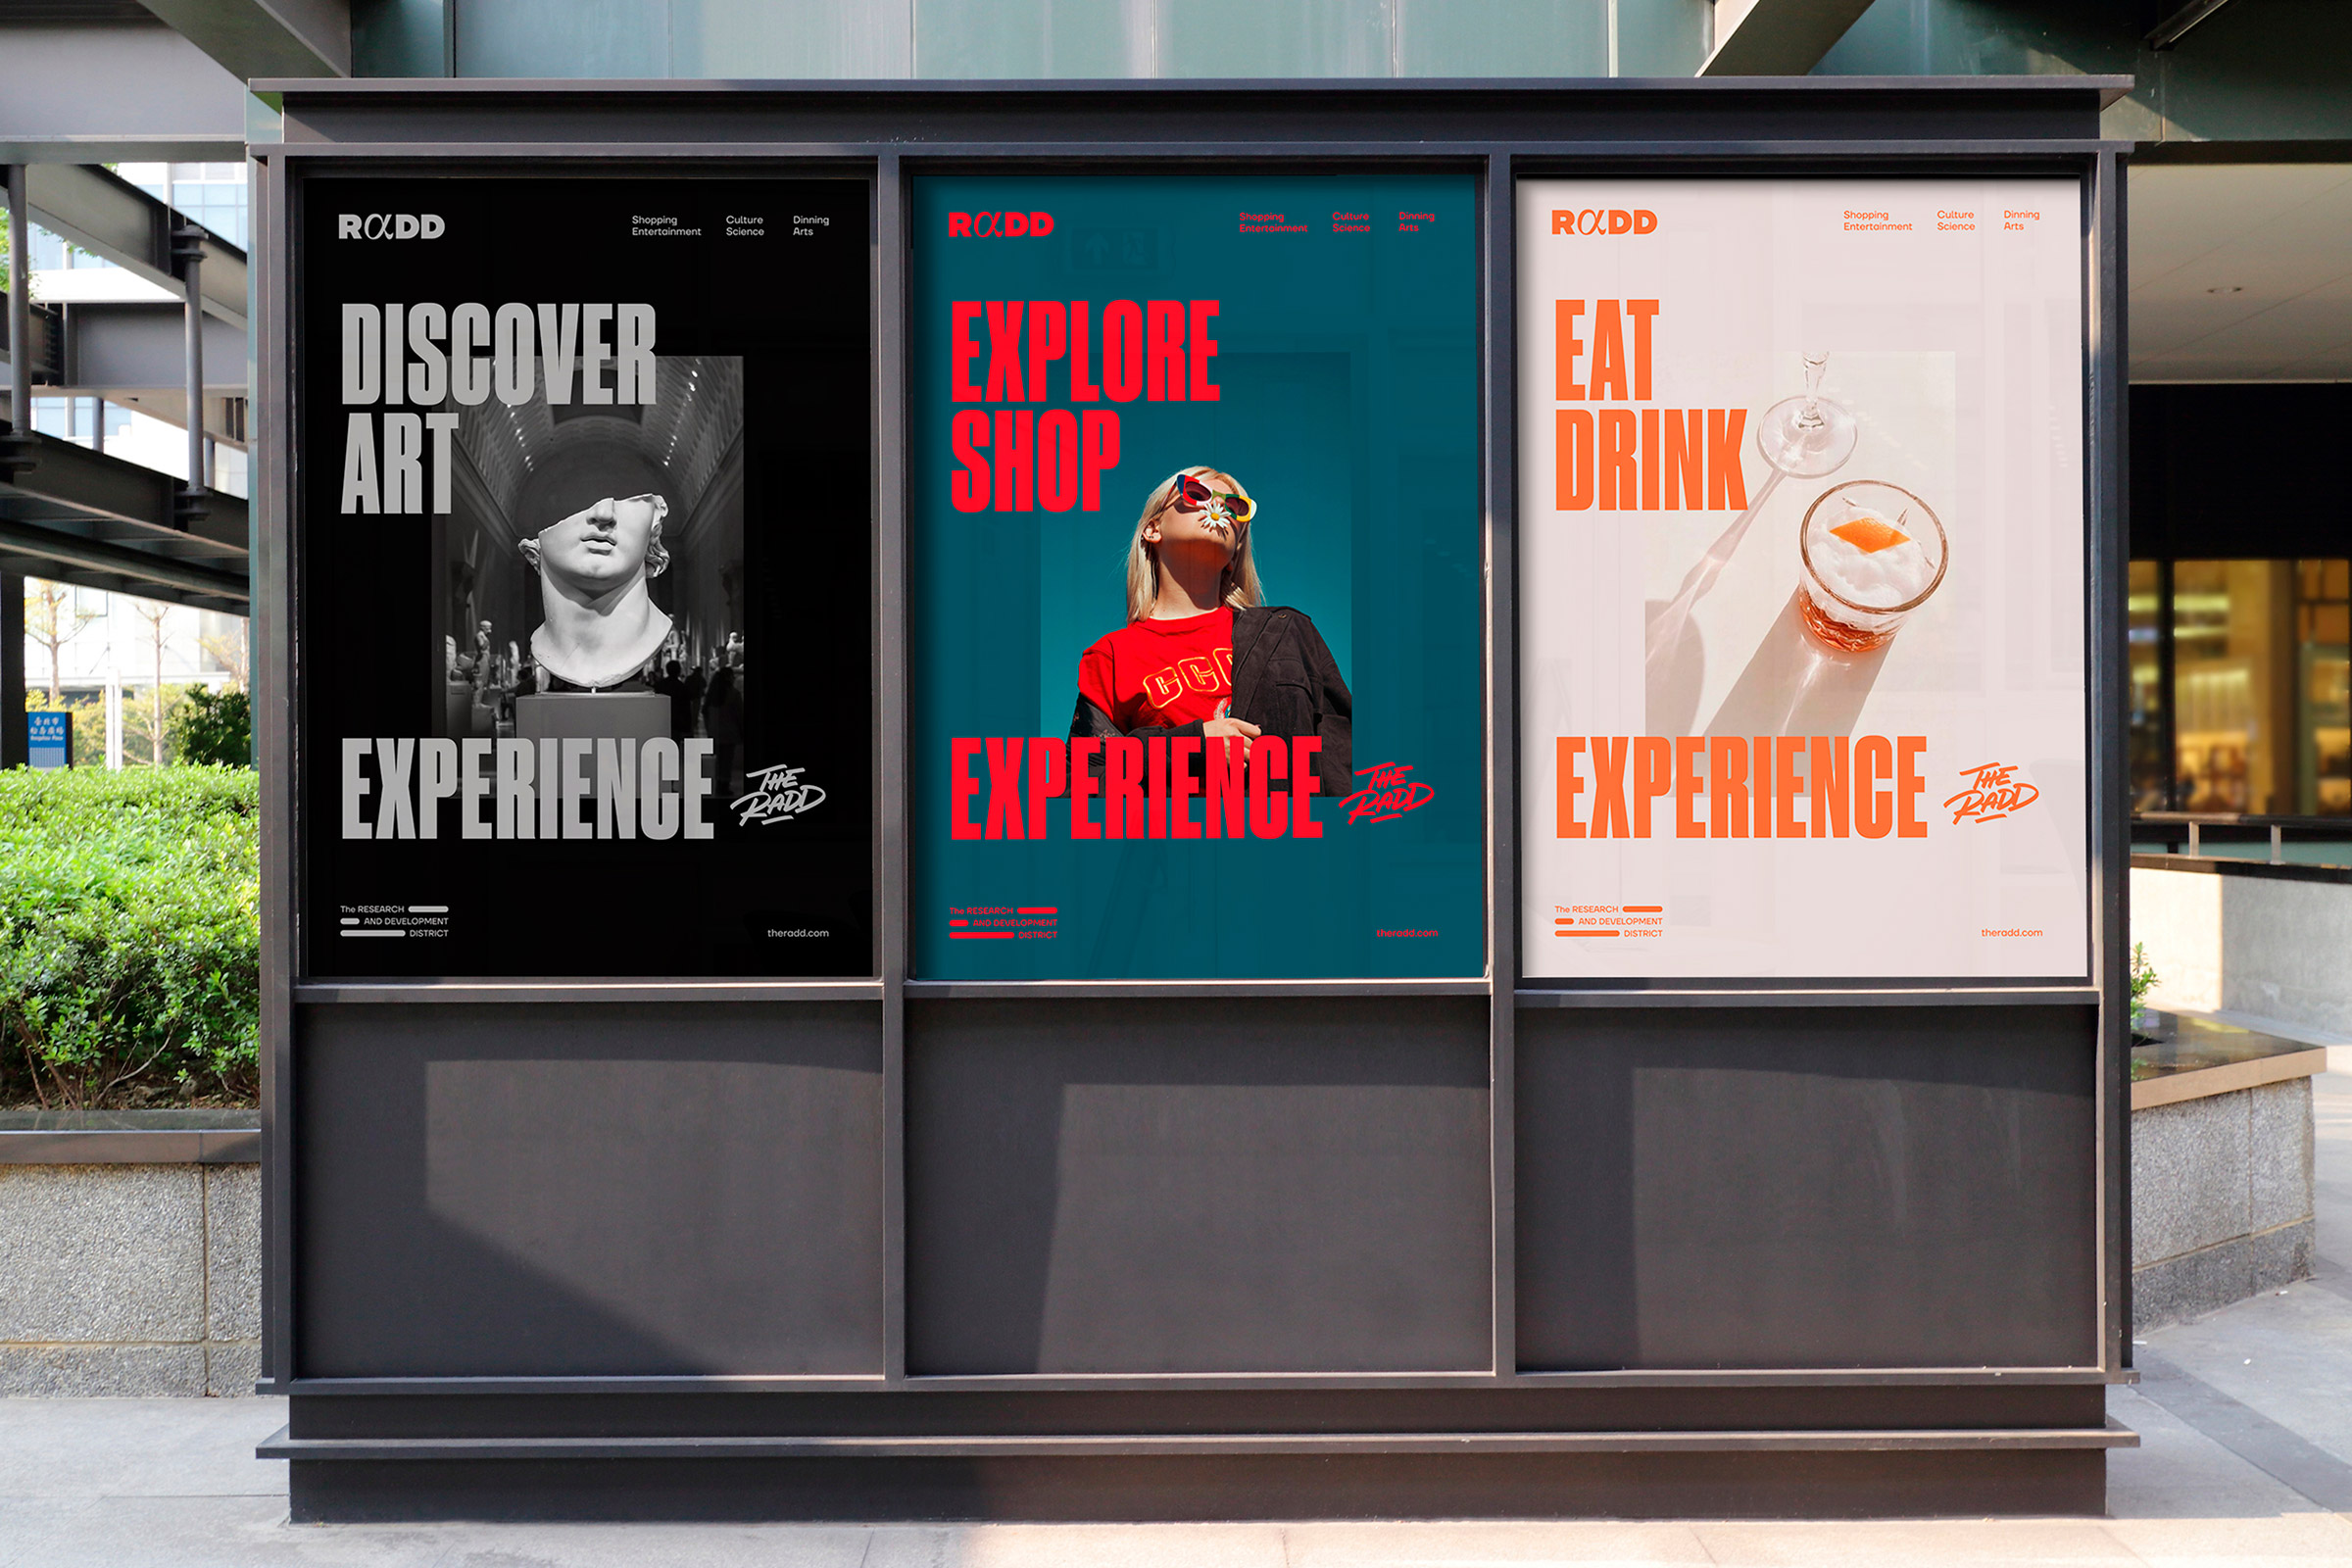 Mubien Brands and Workshop Built Create Brand Identity for The RaDD